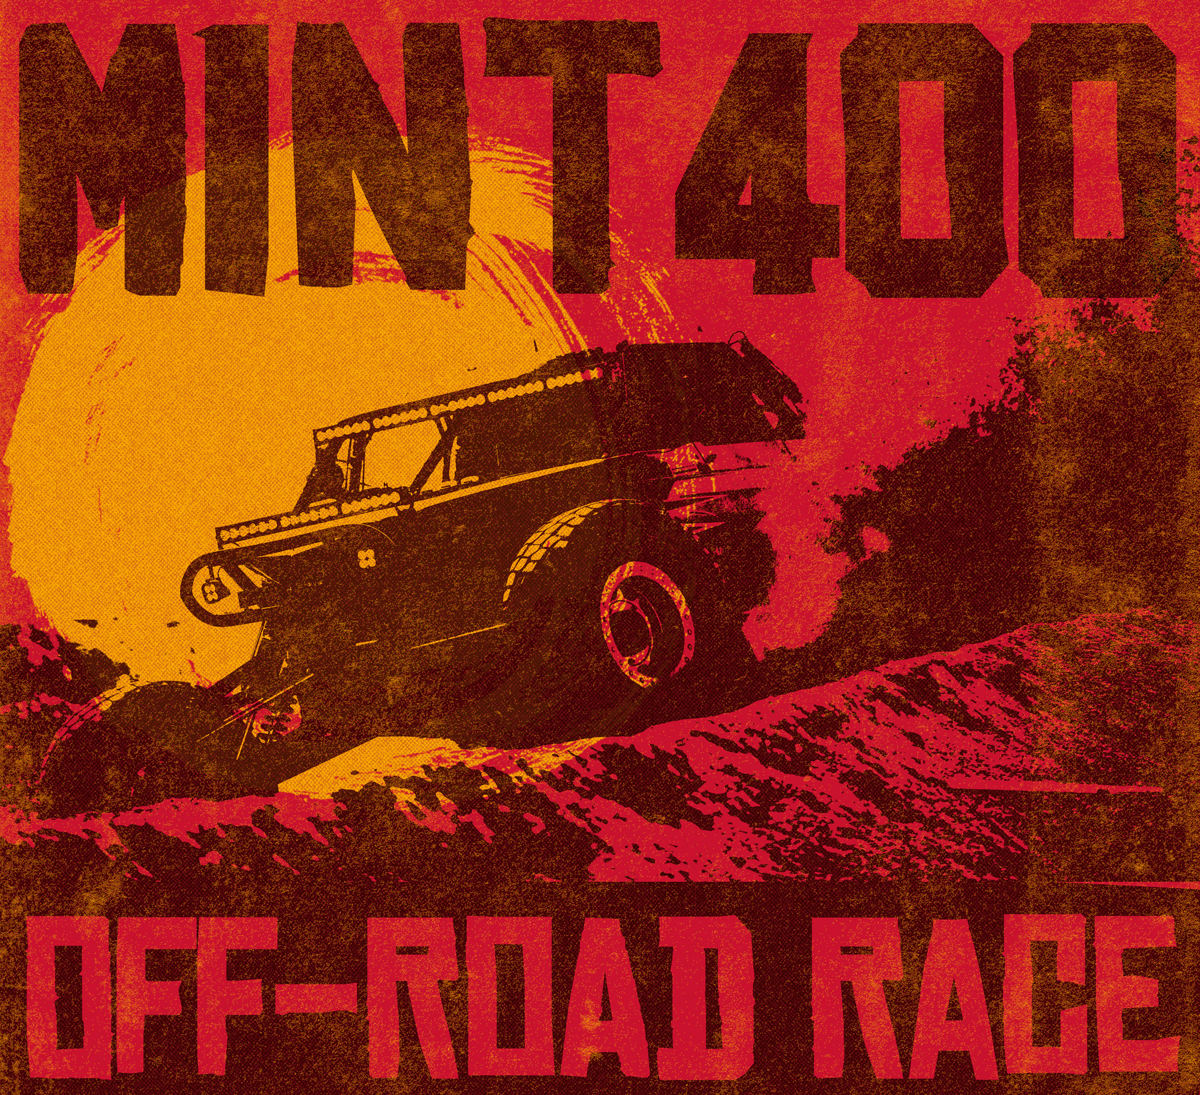 mint400_into_the_sun_tee_2.jpg